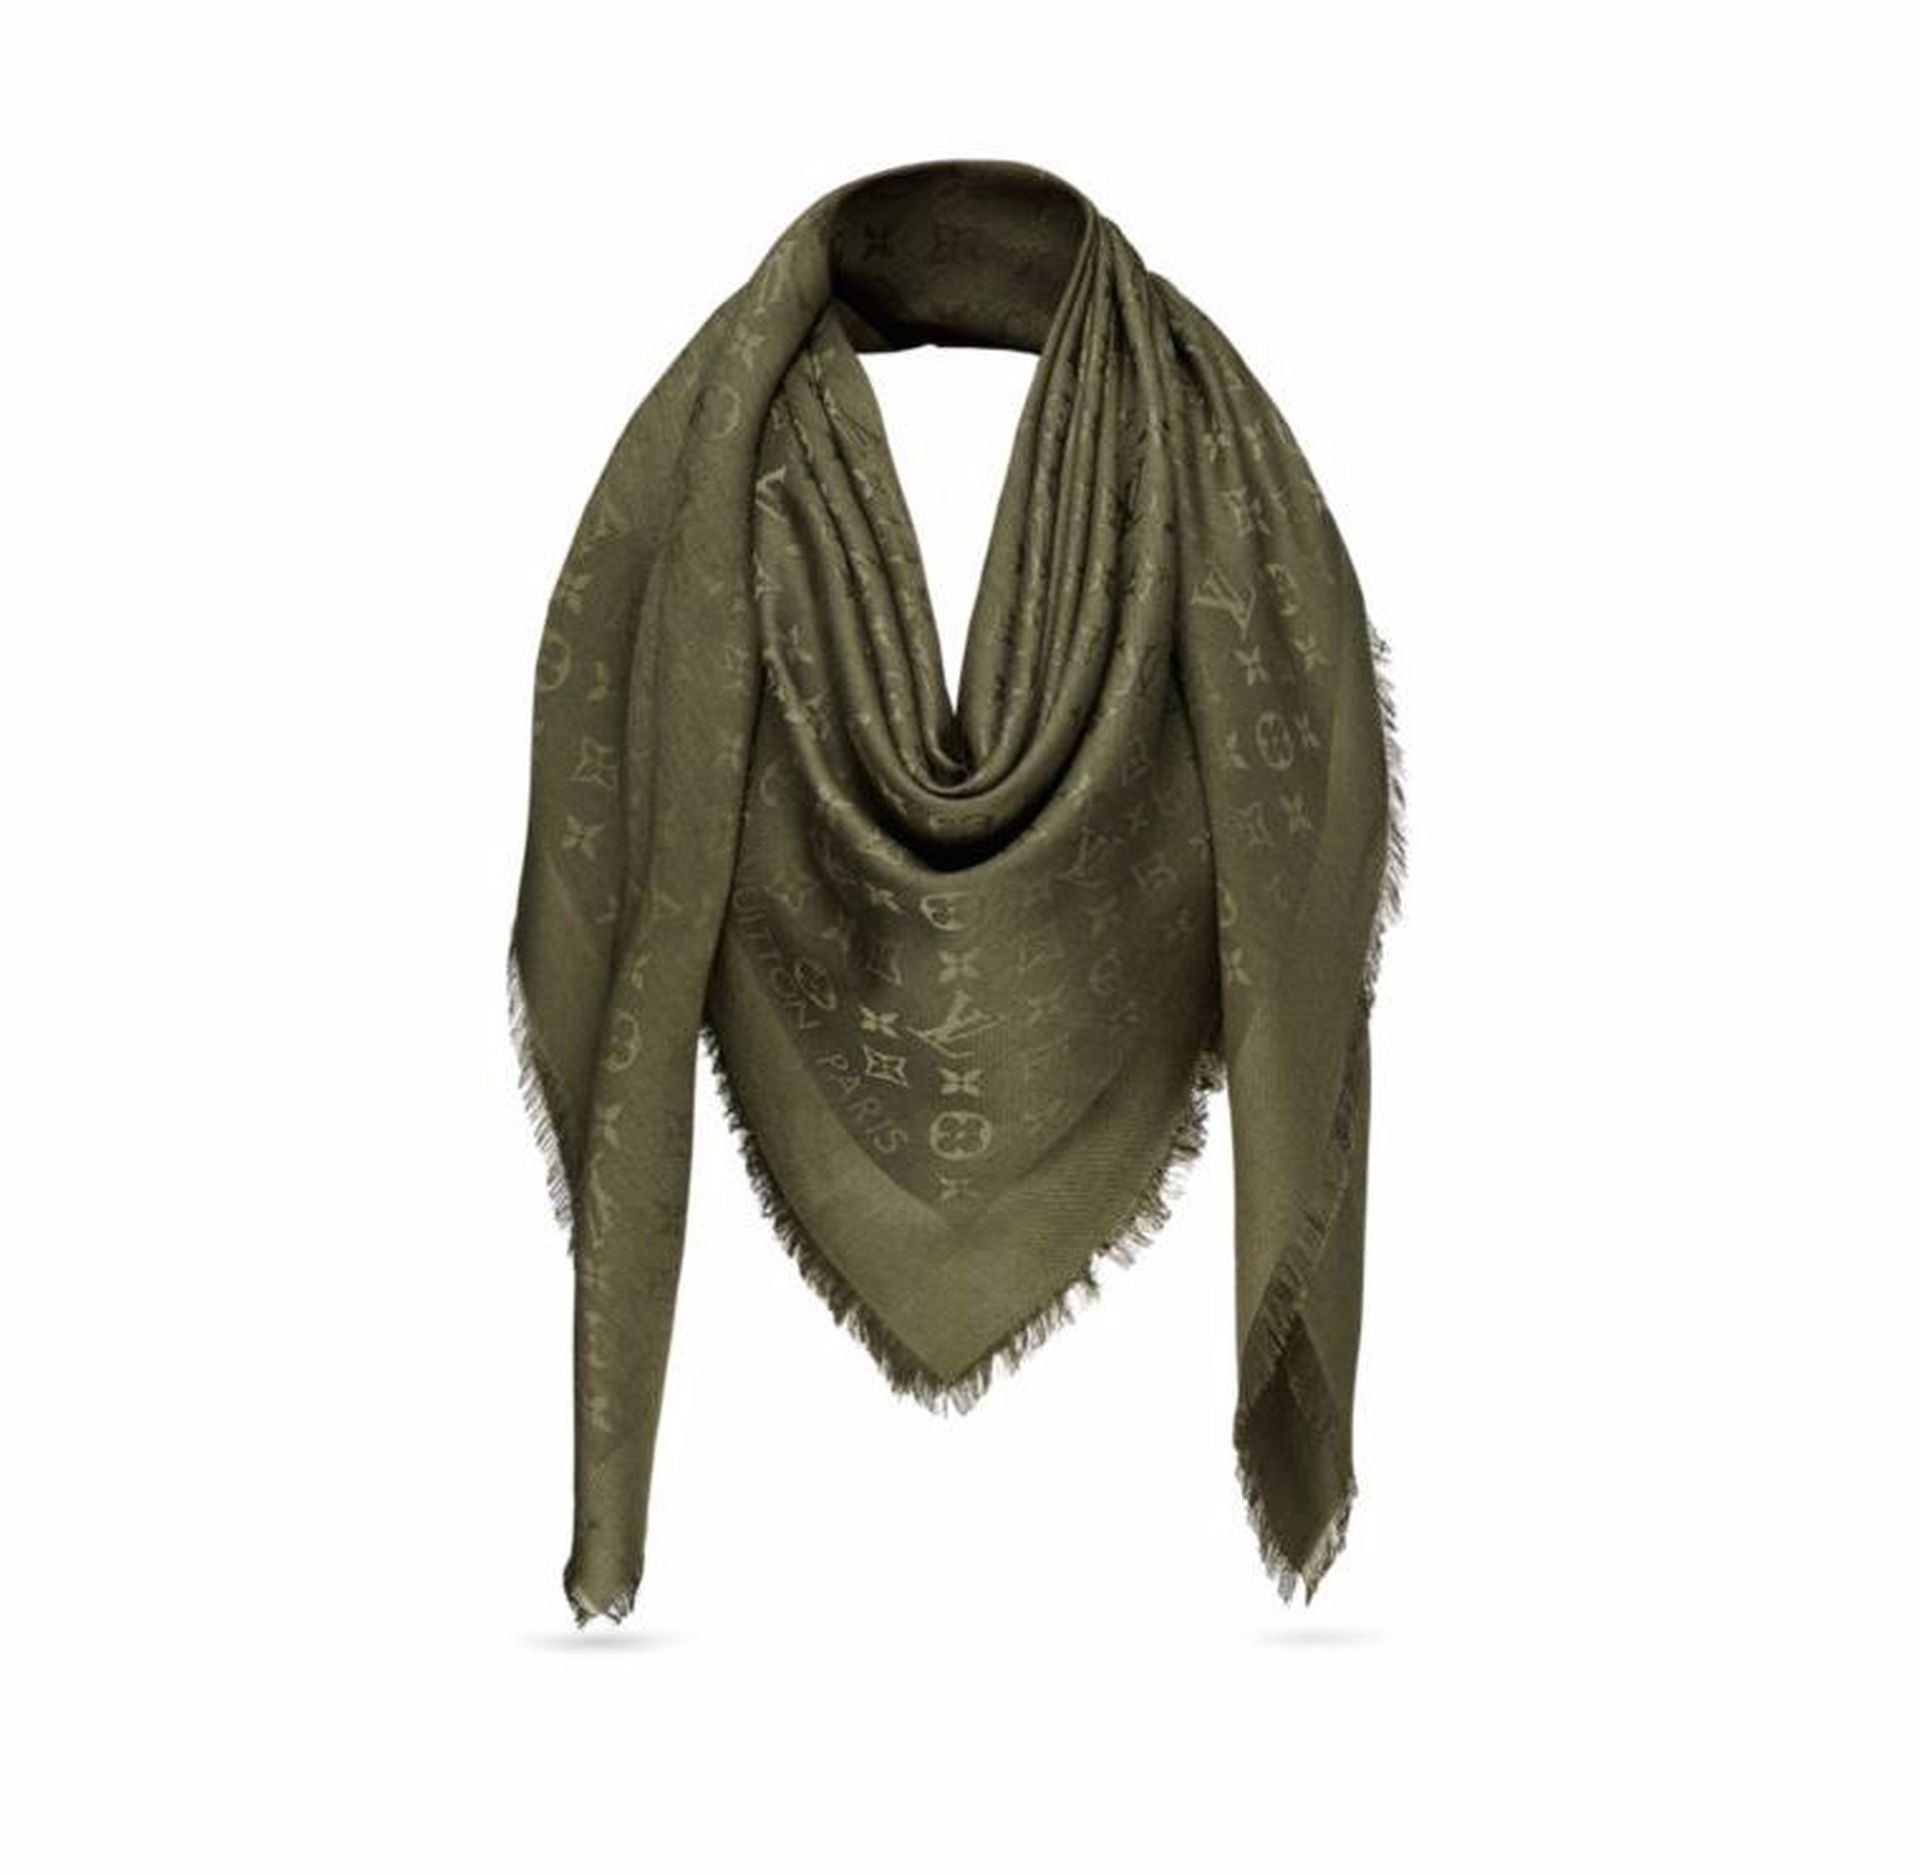 848e9f8ee05c Louis Vuitton M75698 Monogram Shawl Scarf, Kaki -- Awesome products  selected by Anna Churchill